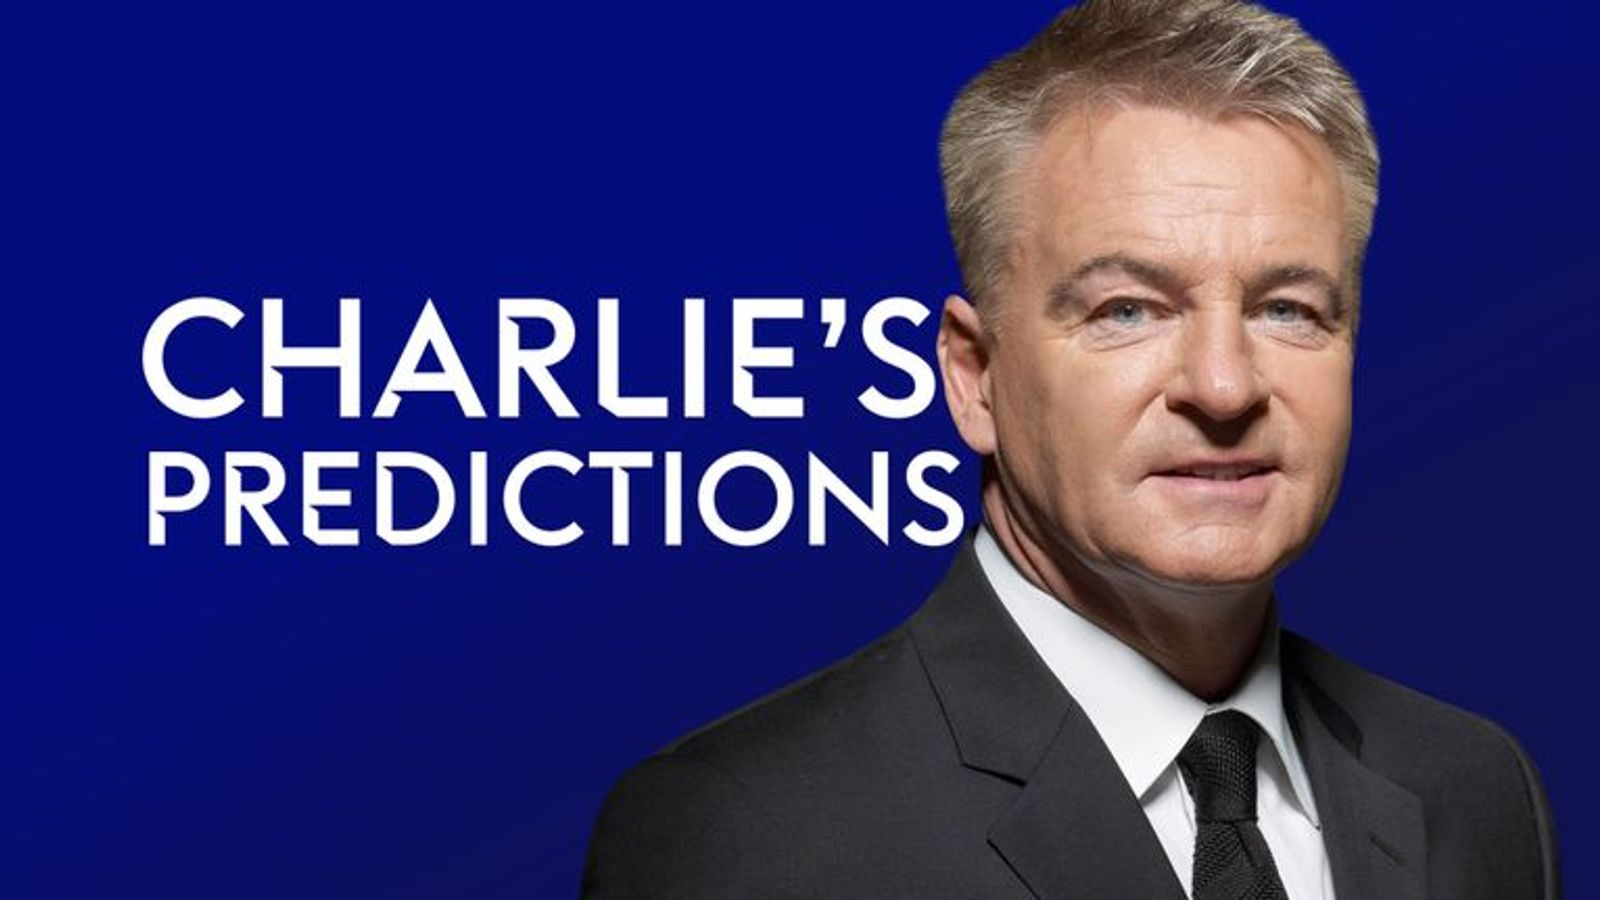 Charlie's Premier League predictions: Palace and Man Utd tipped for wins thumbnail